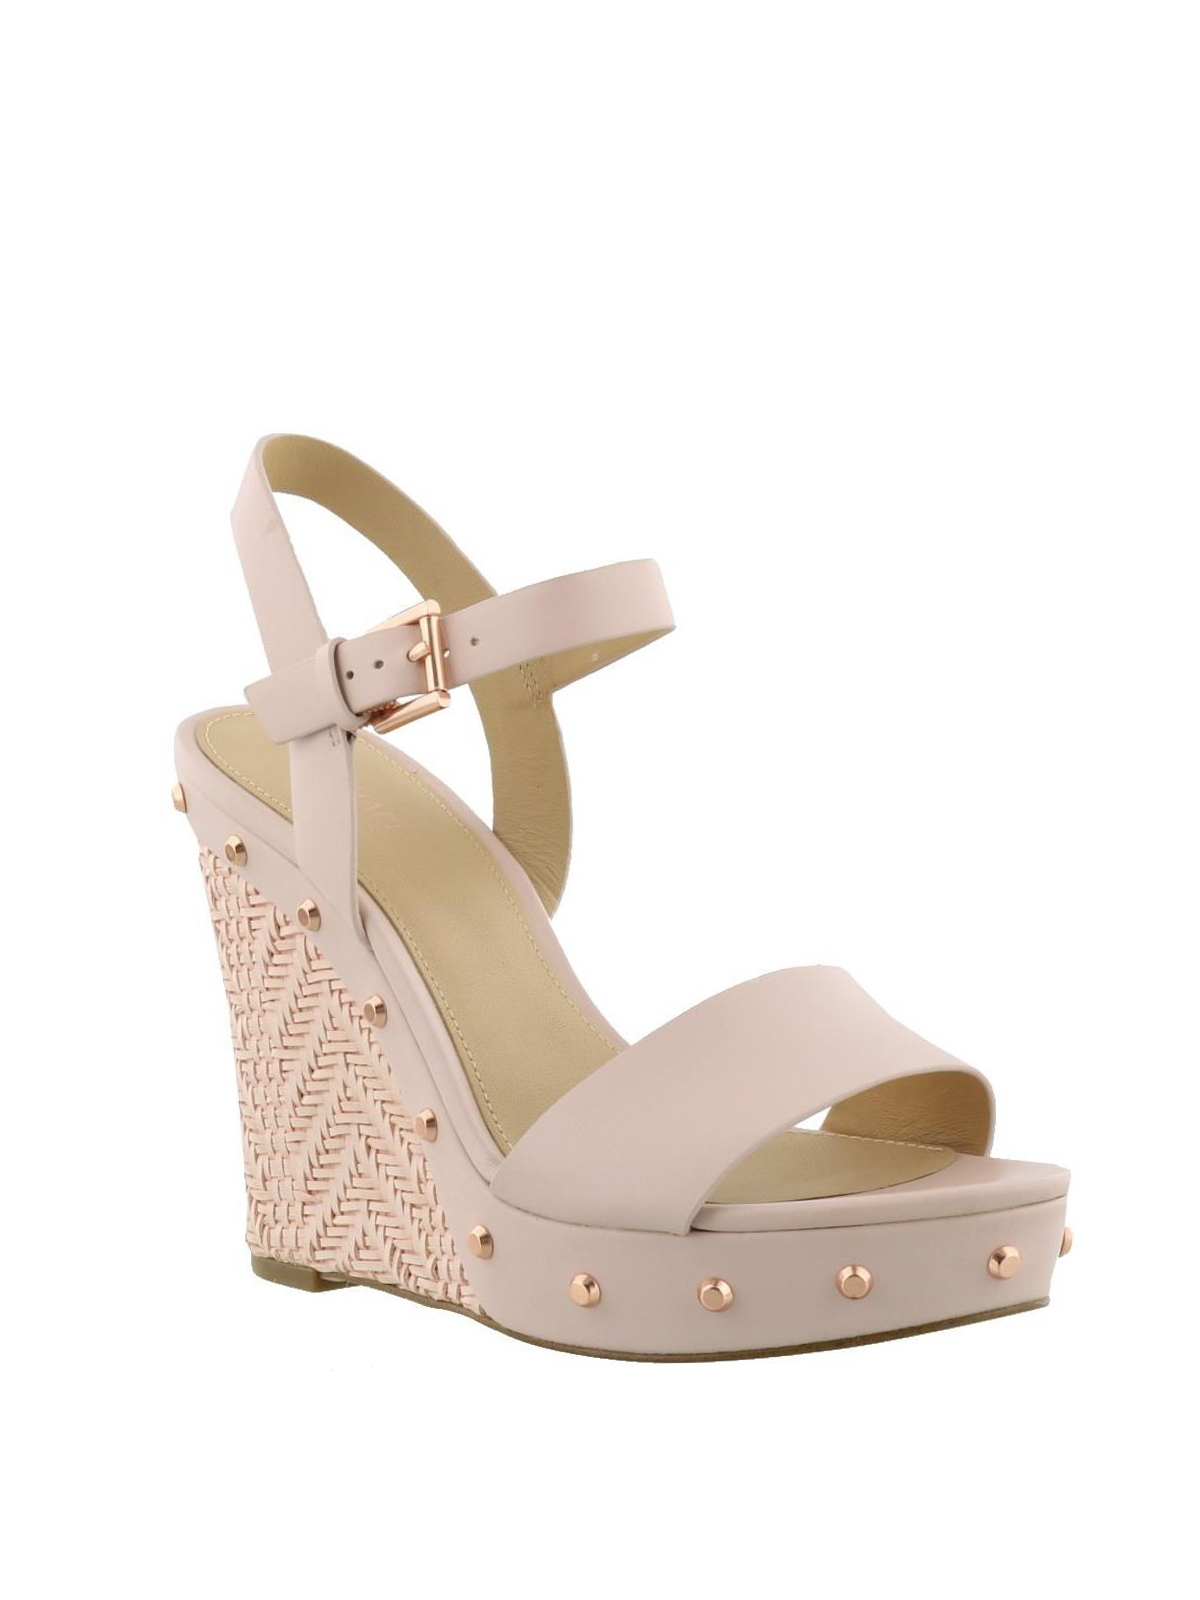 39702a3d12a MICHAEL KORS  sandals online - Ellen pink leather wedge sandals